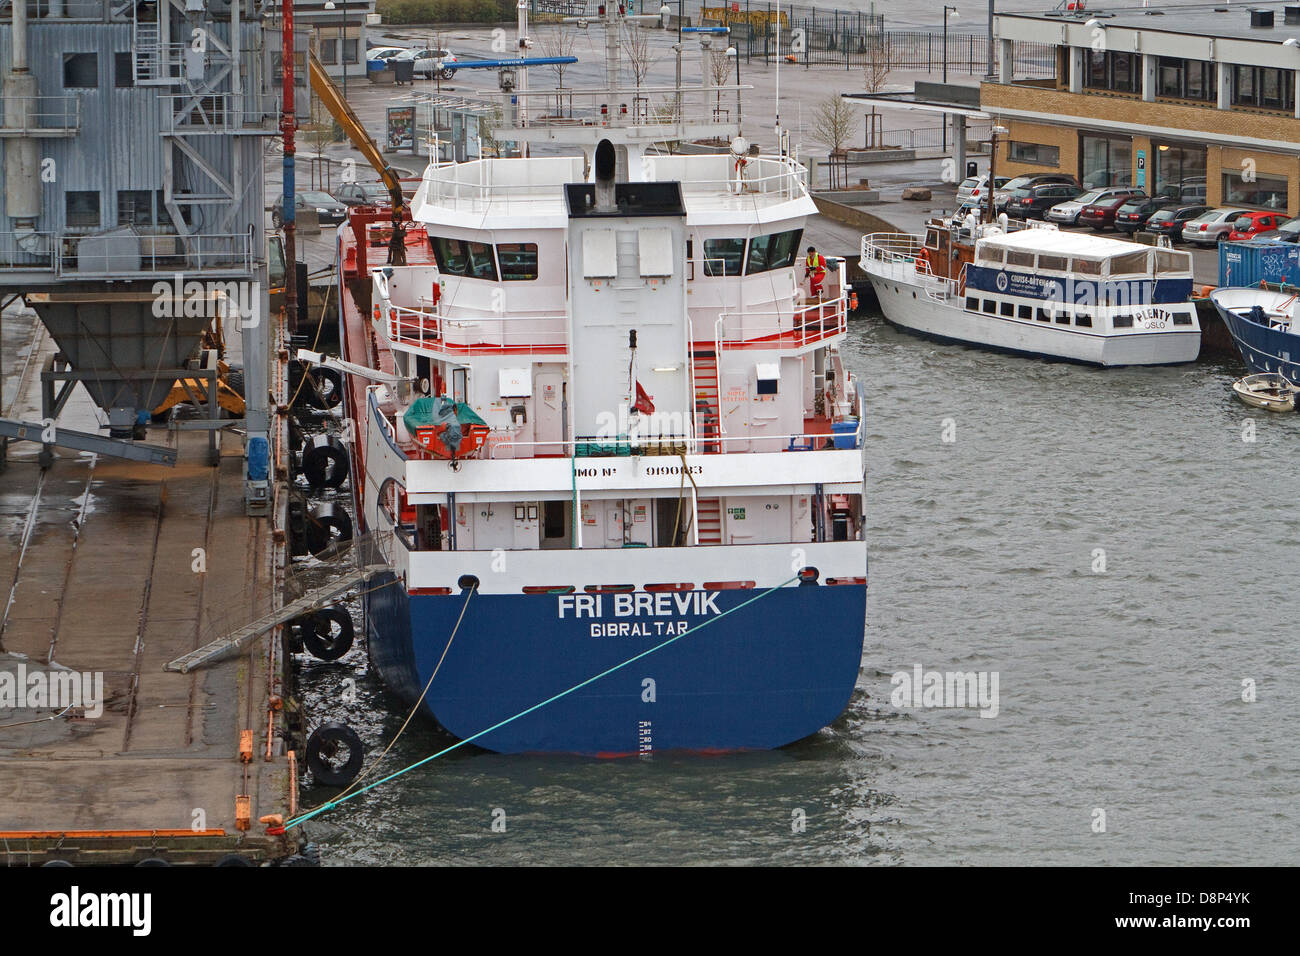 Fri Brevik a ship from Gibraltar docked in Oslo Norway Stock Photo